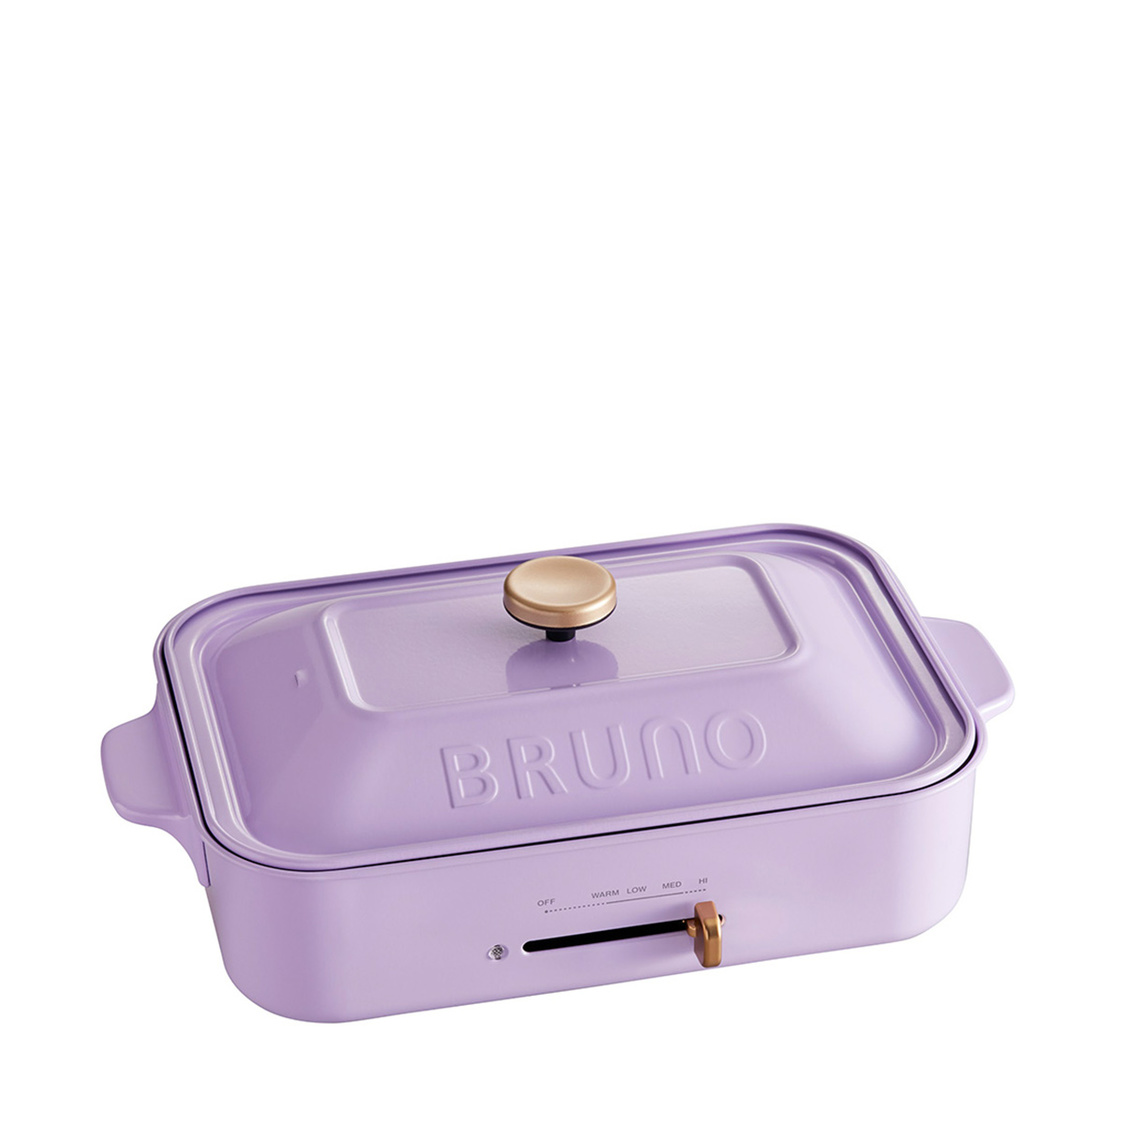 Compact Hotplate Lavender